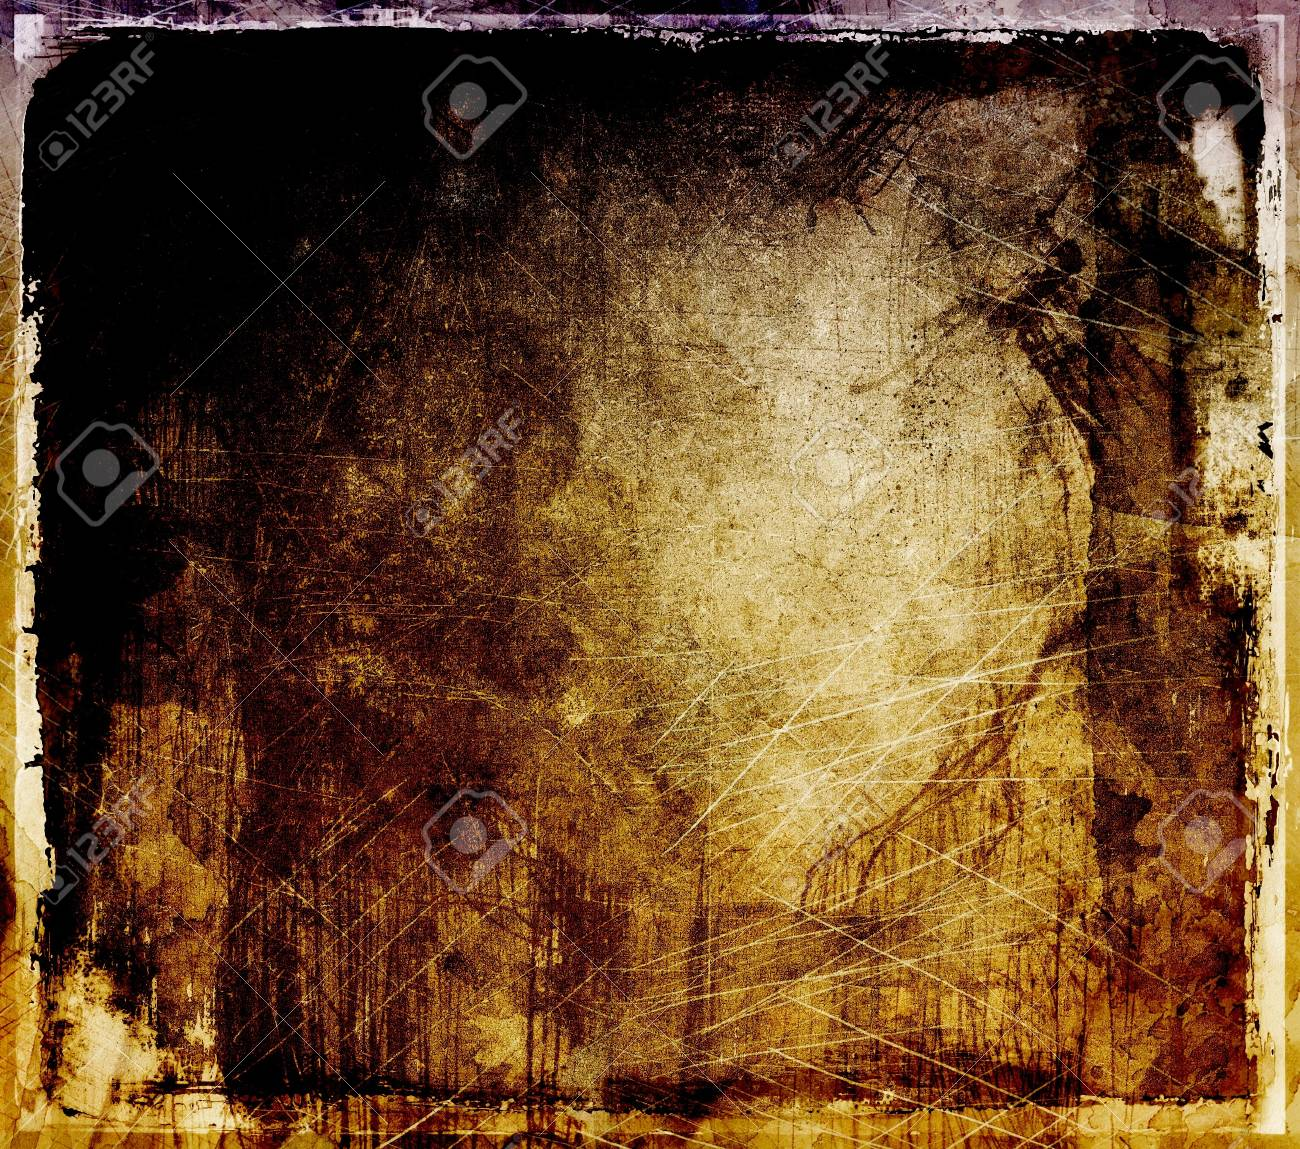 Grunge abstract background Stock Photo - 16133453